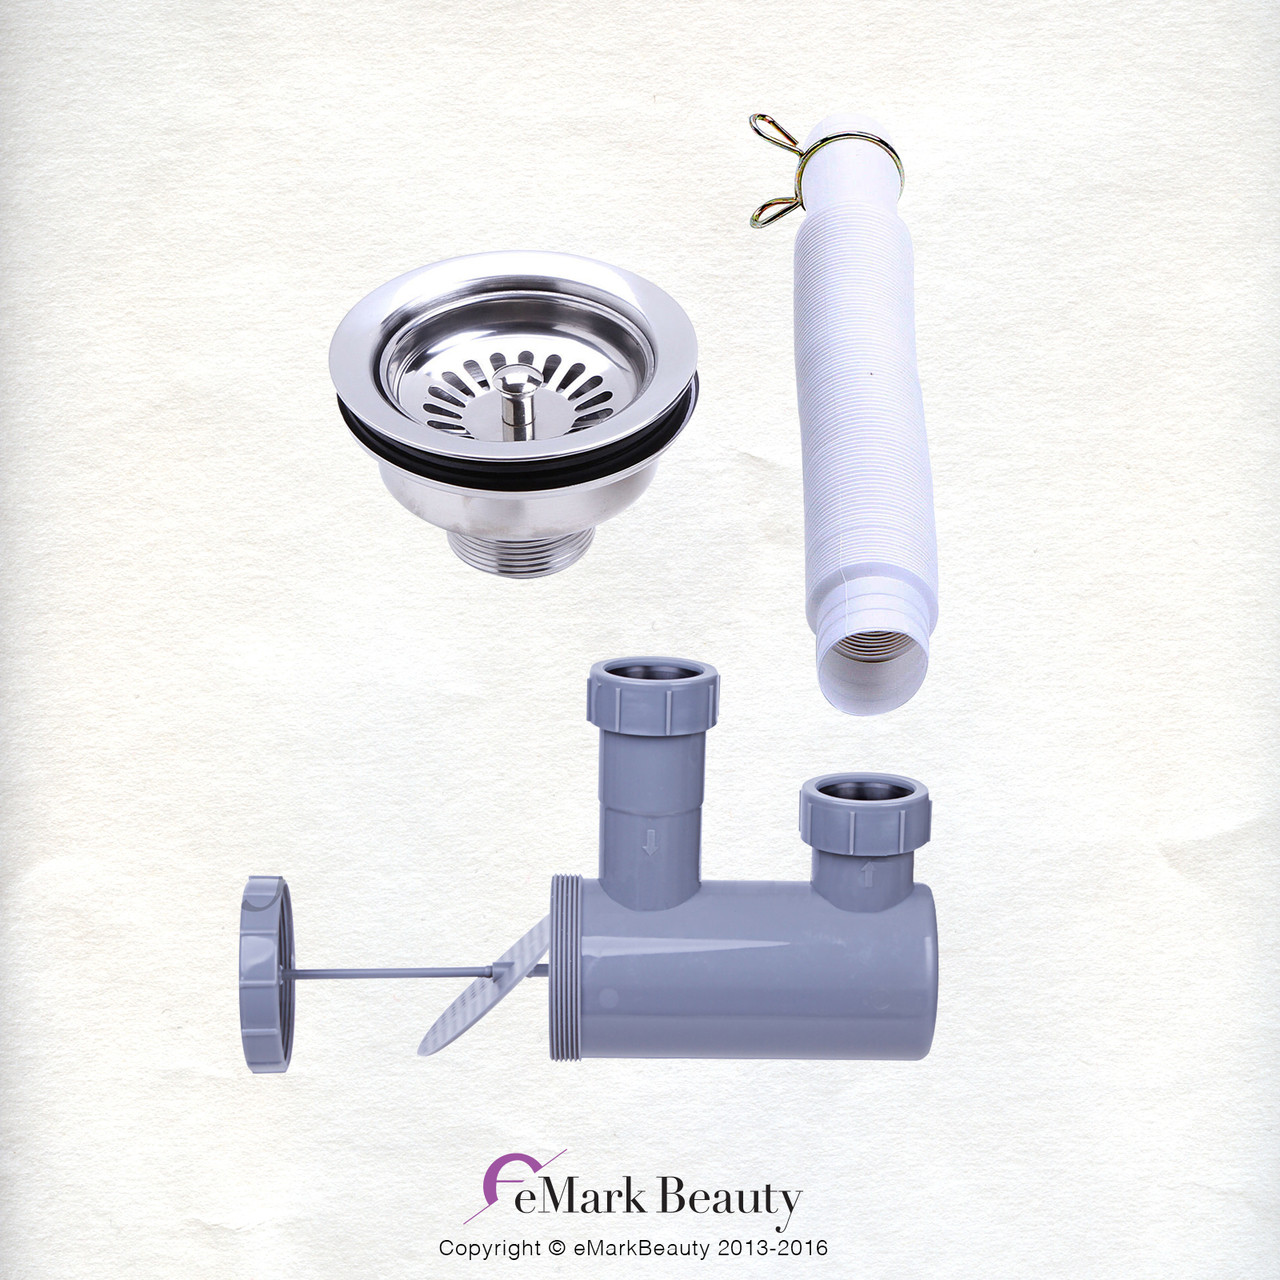 Upgraded Plumbing Parts Kit for use with Shampoo Bowls with Gel Neck Rest TLC-116KS.77DH